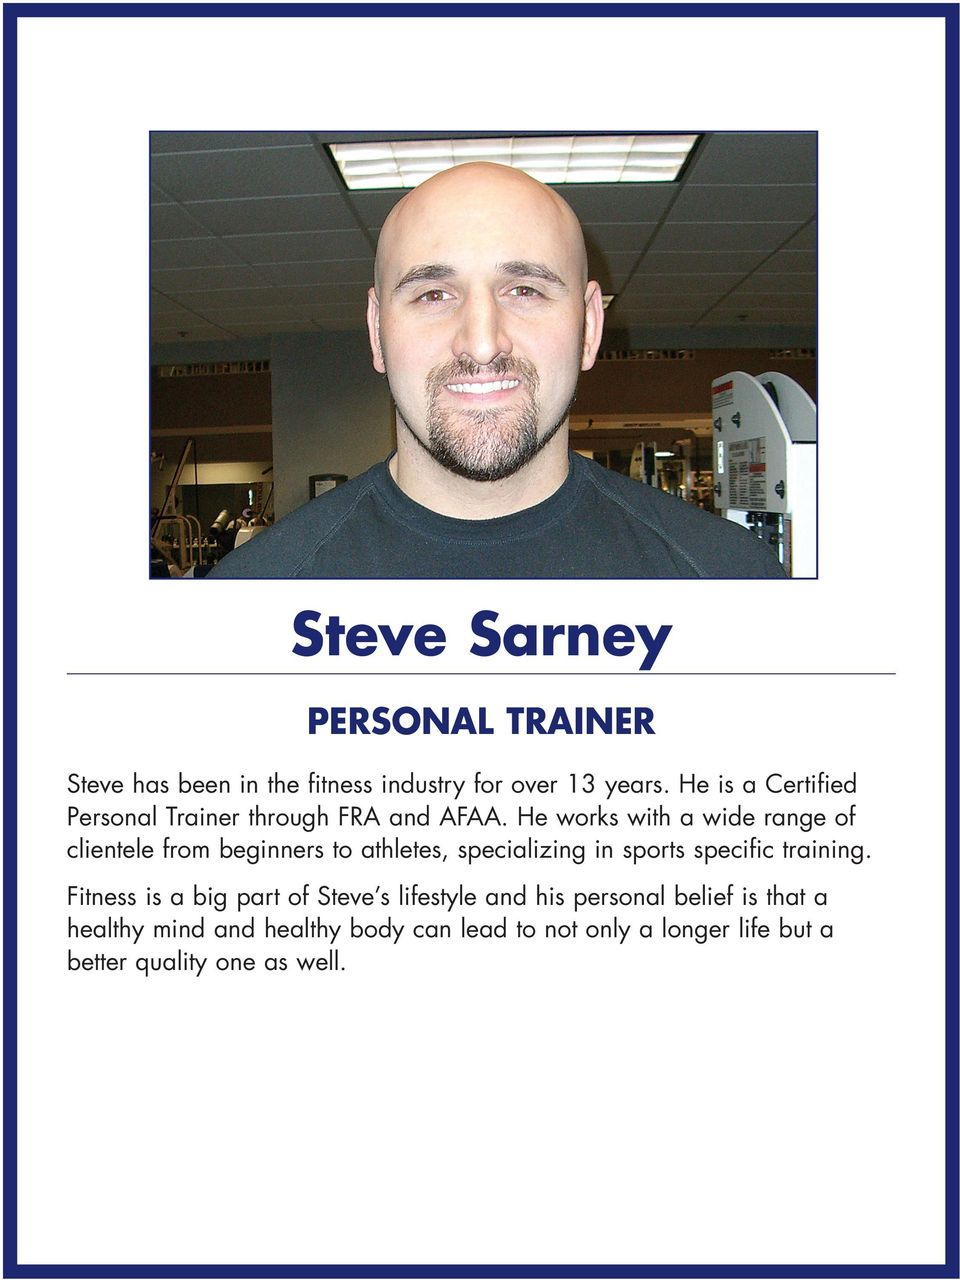 He works with a wide range of clientele from beginners to athletes, specializing in sports specific